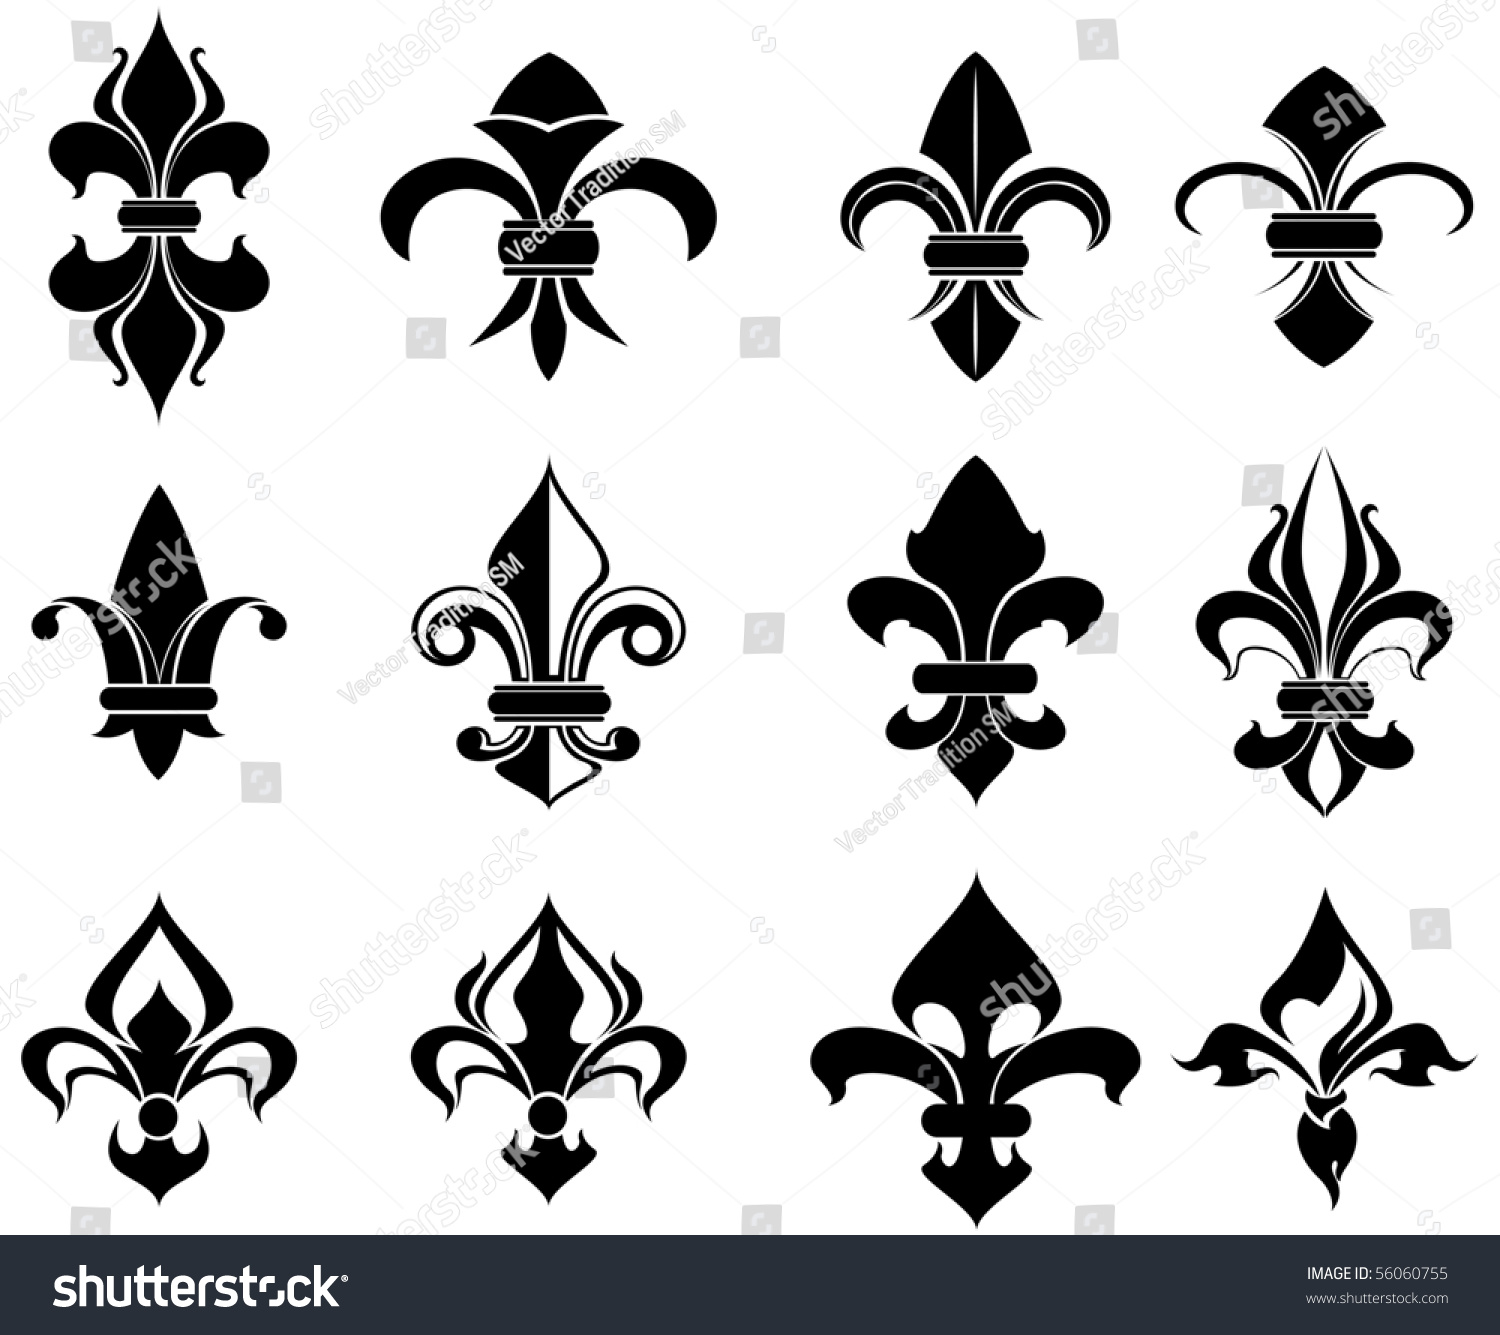 Royalty free royal french lily symbols also as 56060755 stock royal french lily symbols also as emblem or logo template vector version also available biocorpaavc Gallery